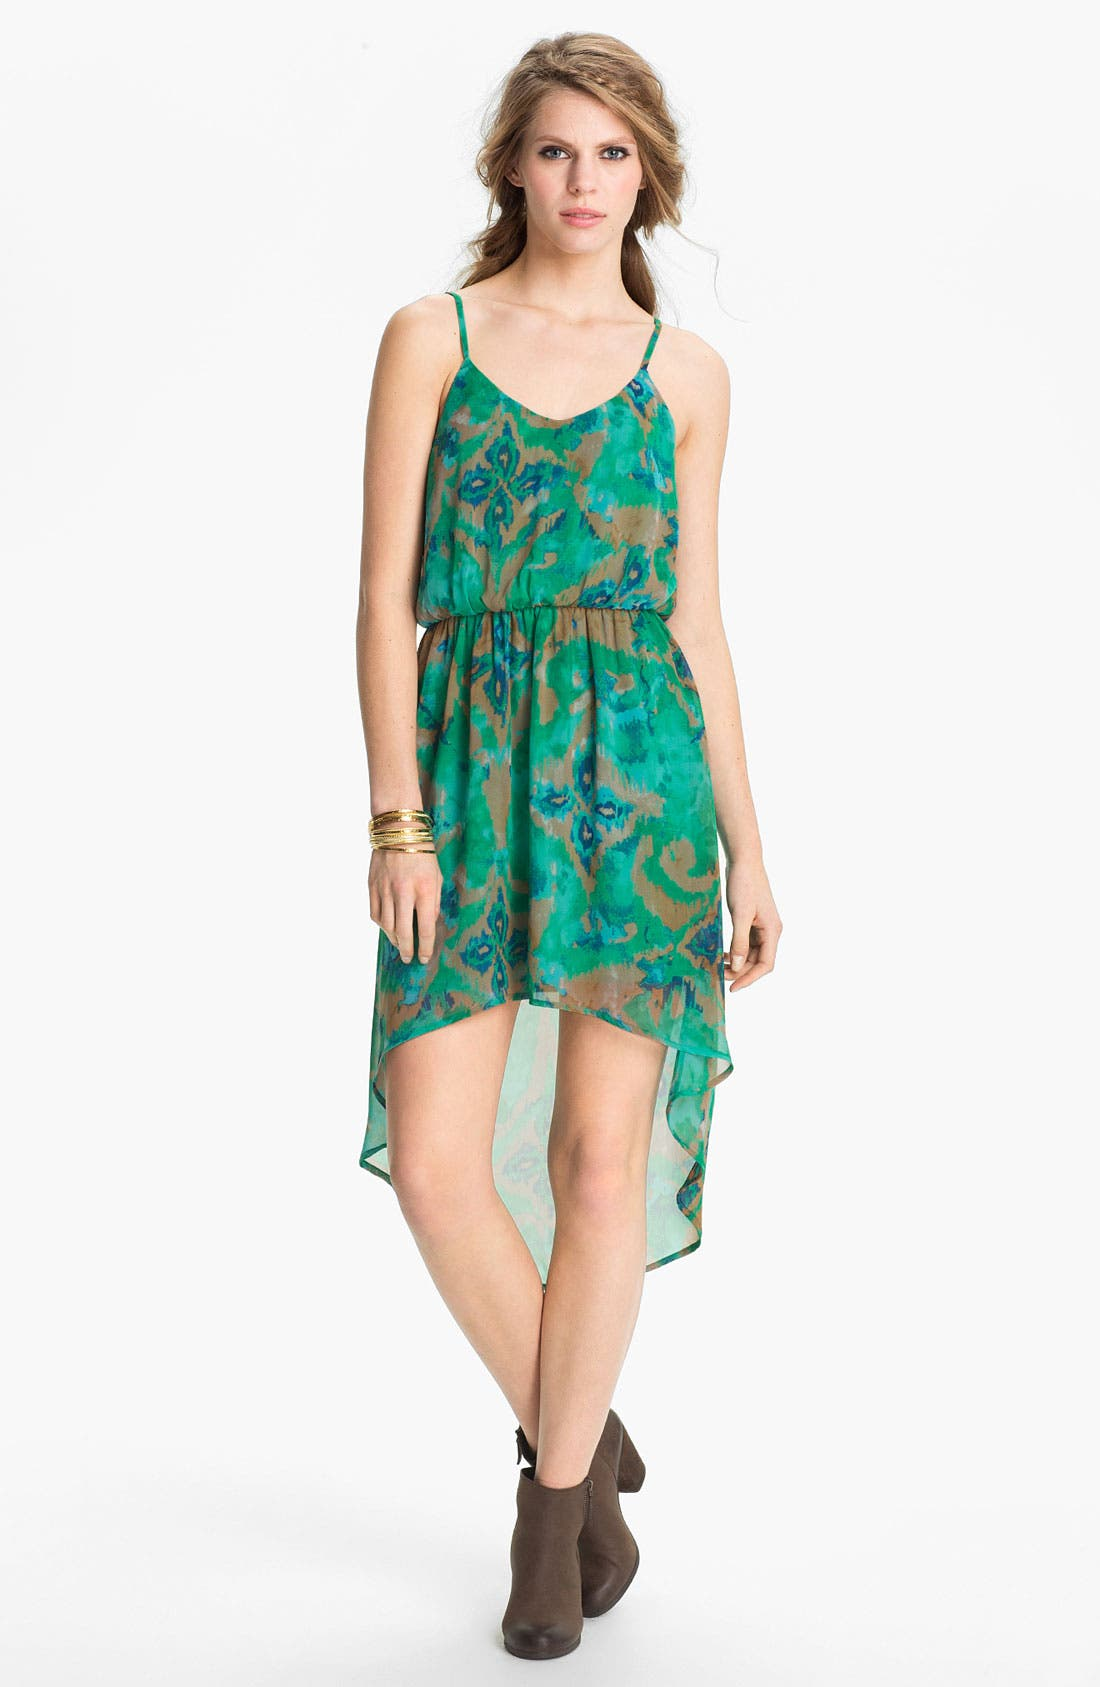 Alternate Image 1 Selected - Lush High/Low Print Chiffon Dress (Juniors)